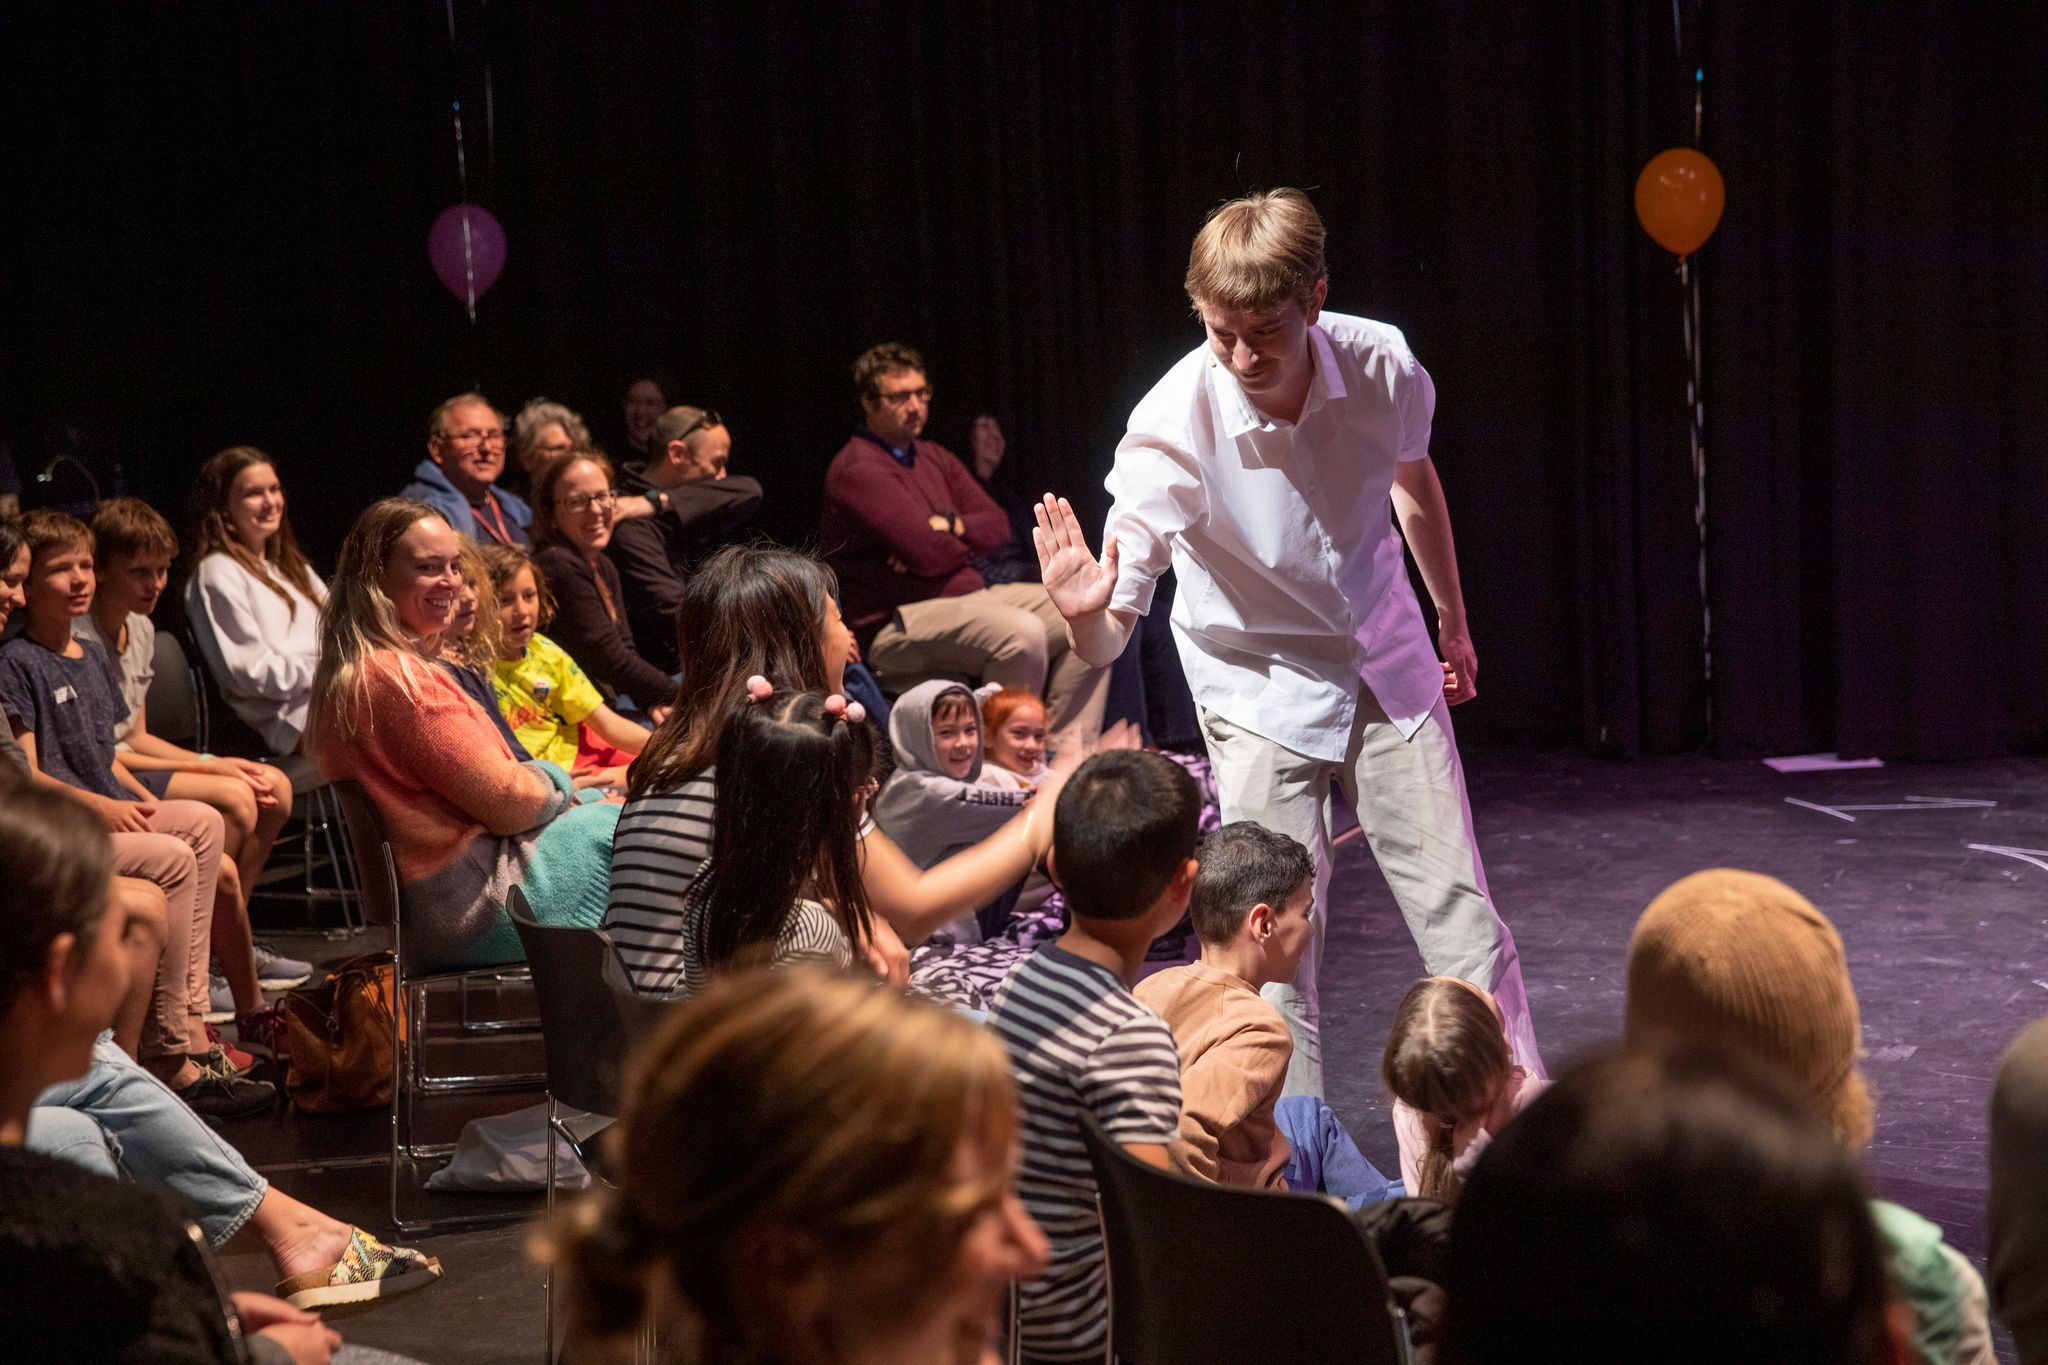 Smiling, Adam Kelly, the star of the show, gives audience members a high five